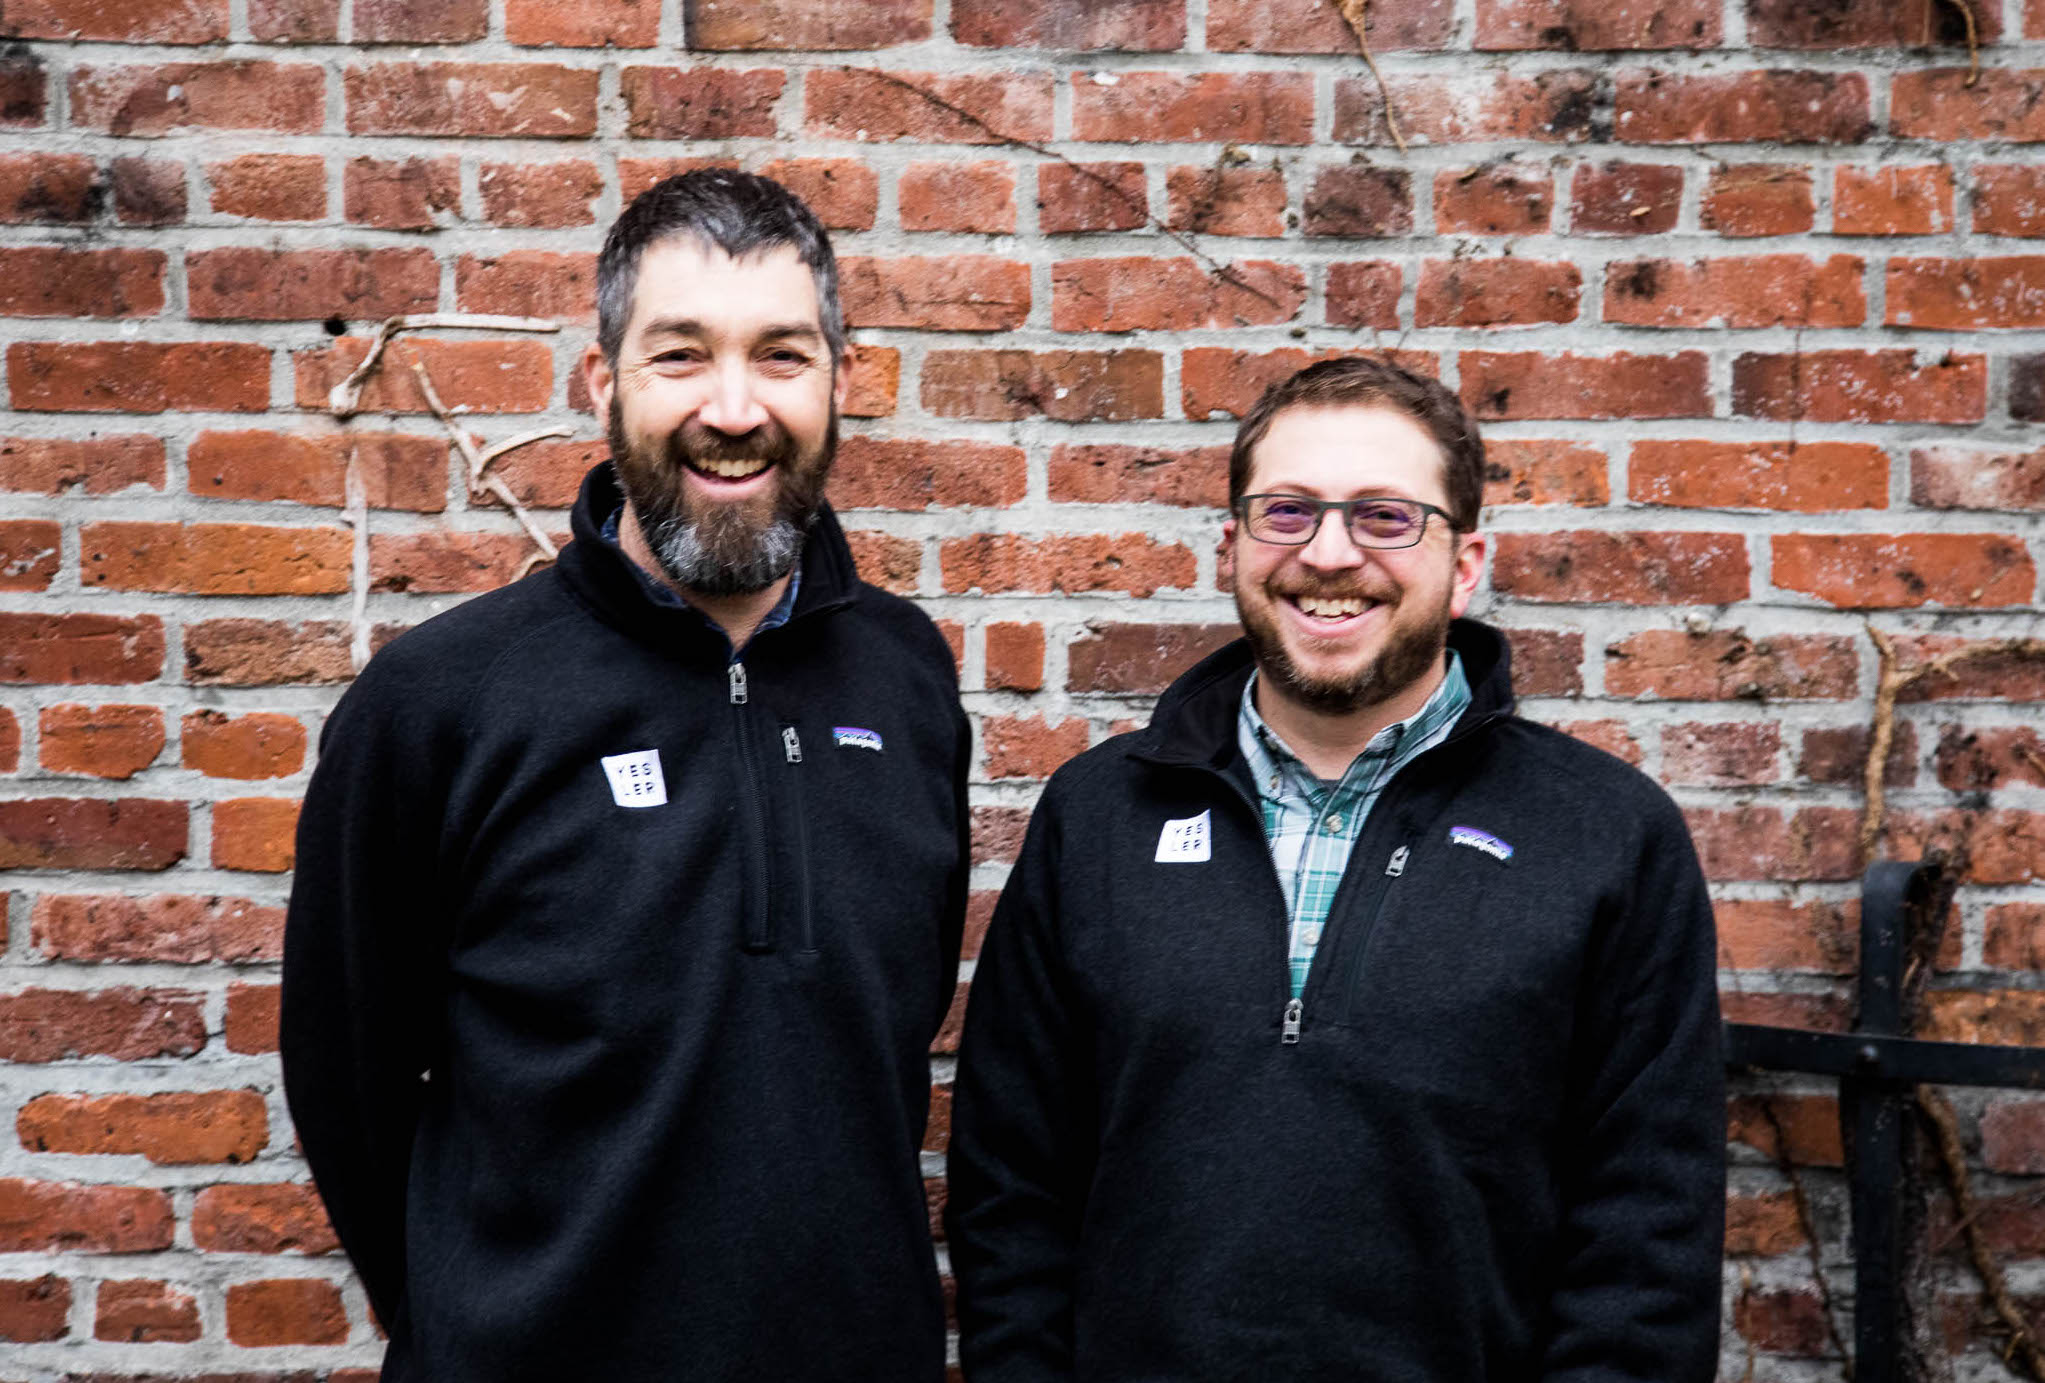 Seattle startup Yesler raises $3.3M for its B2B lumber and building materials marketplace